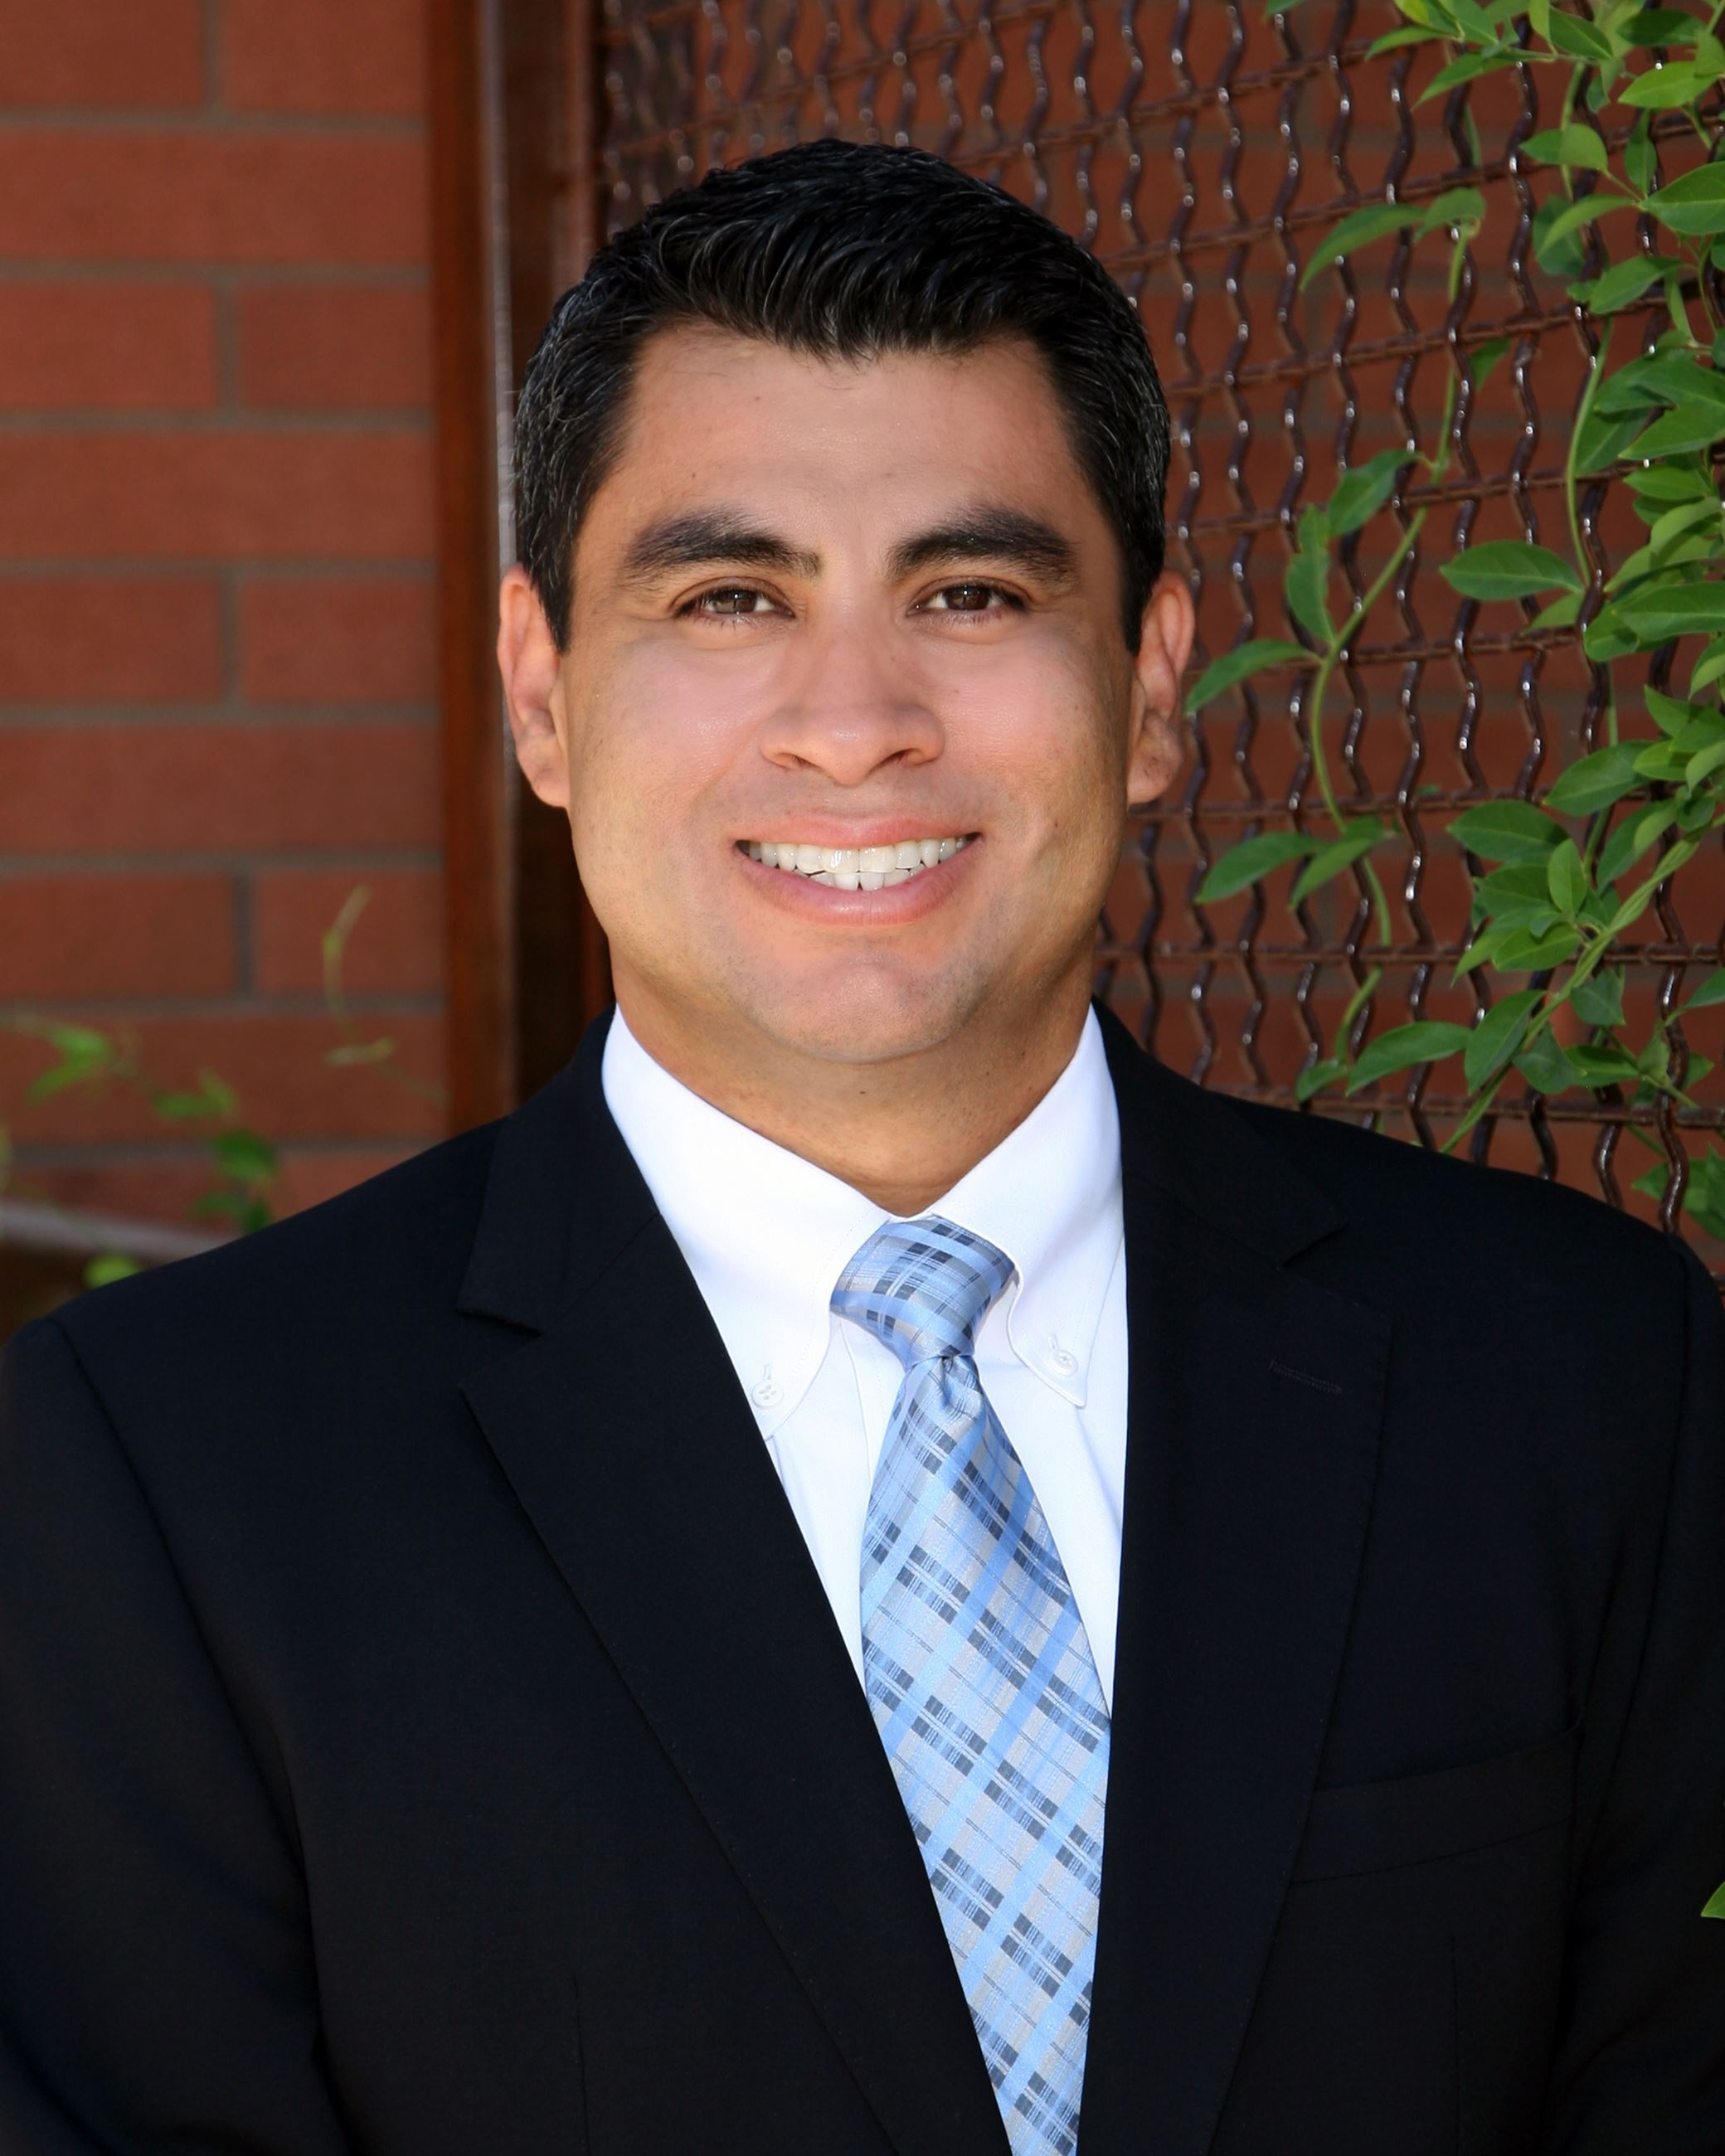 City Manager Photo 2011